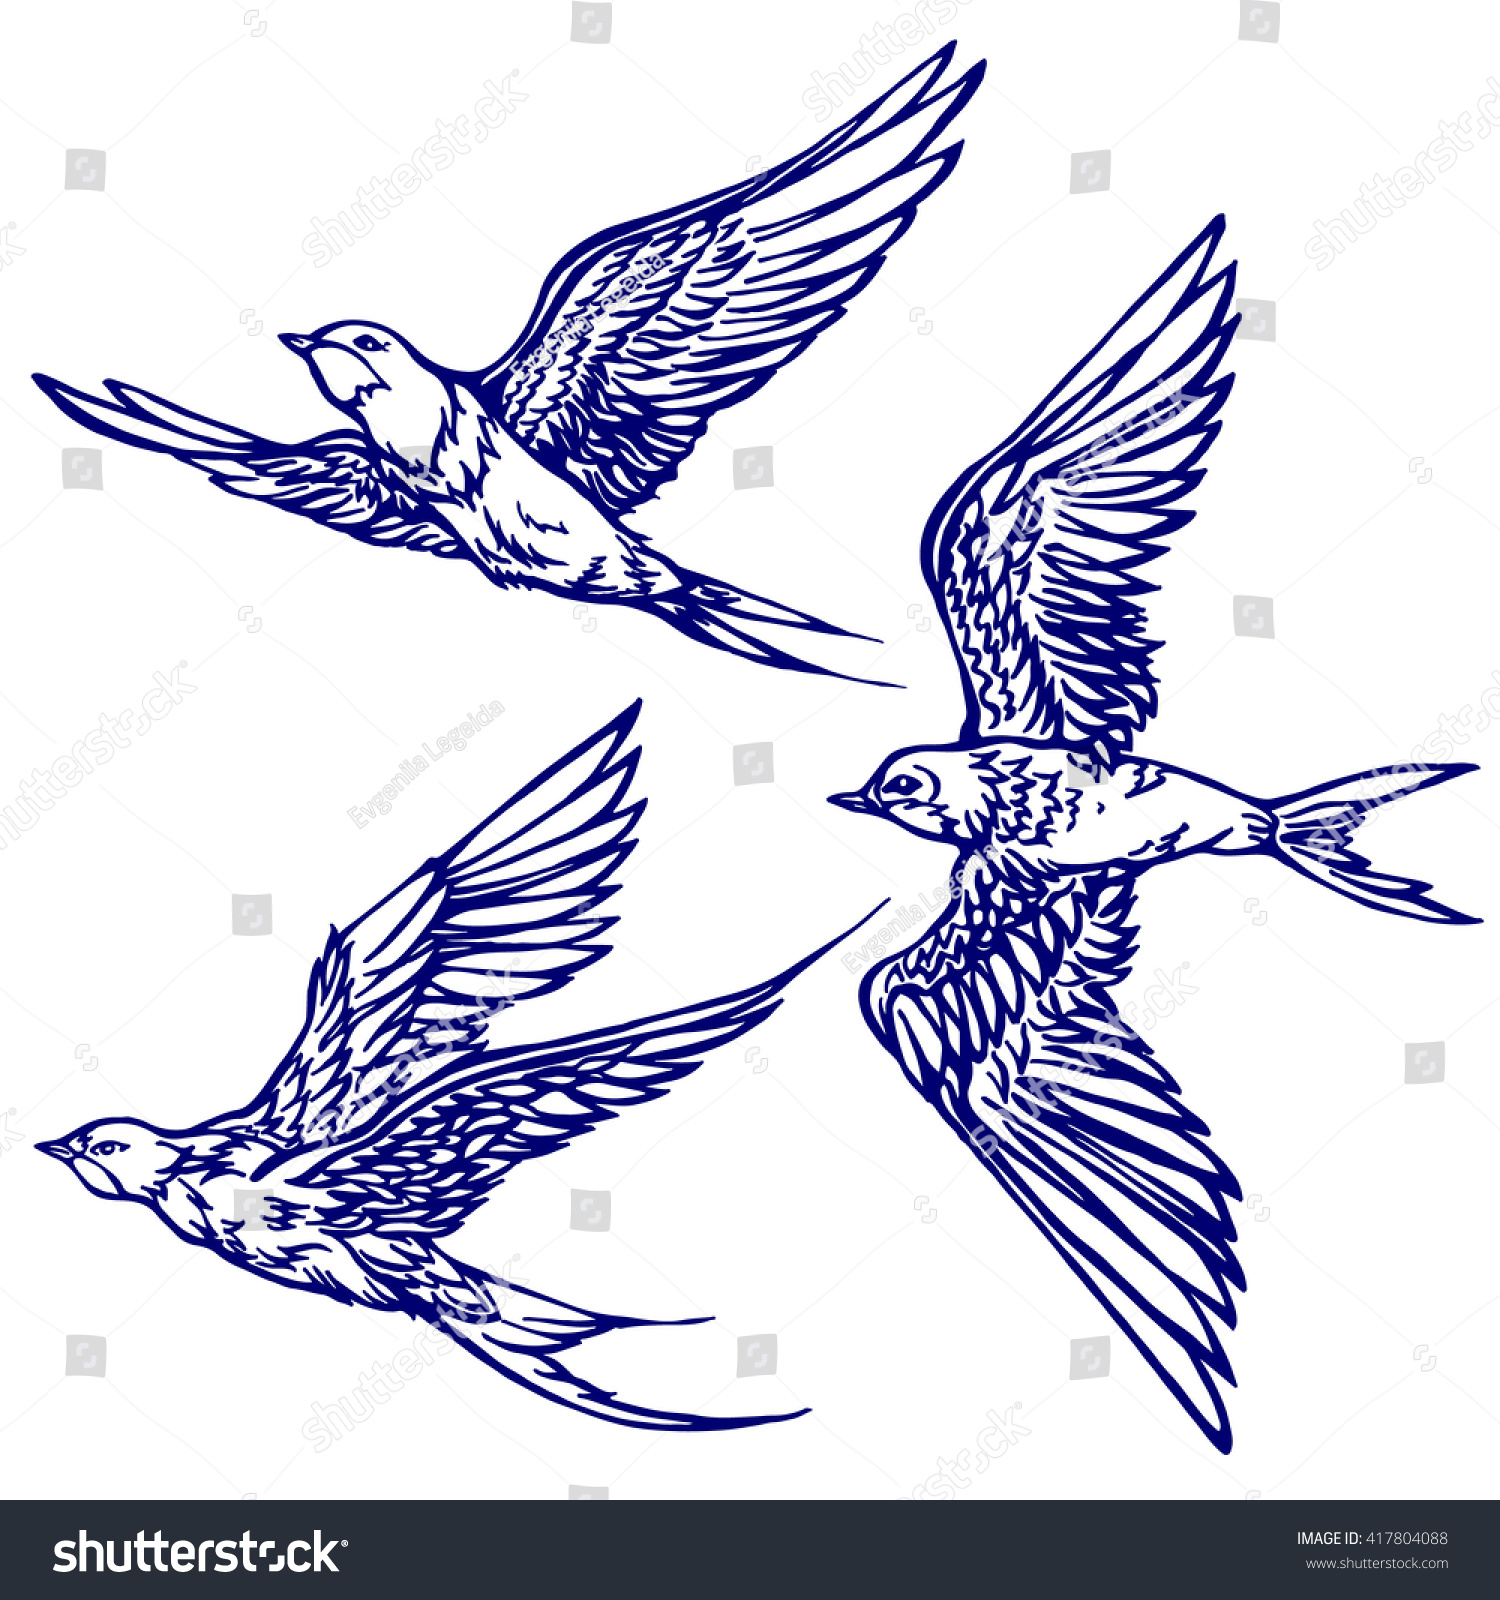 Set of sketches of flying swallows stock vector illustration - Set Of Three Swallows Flying Hand Drawn Graphics Sketch